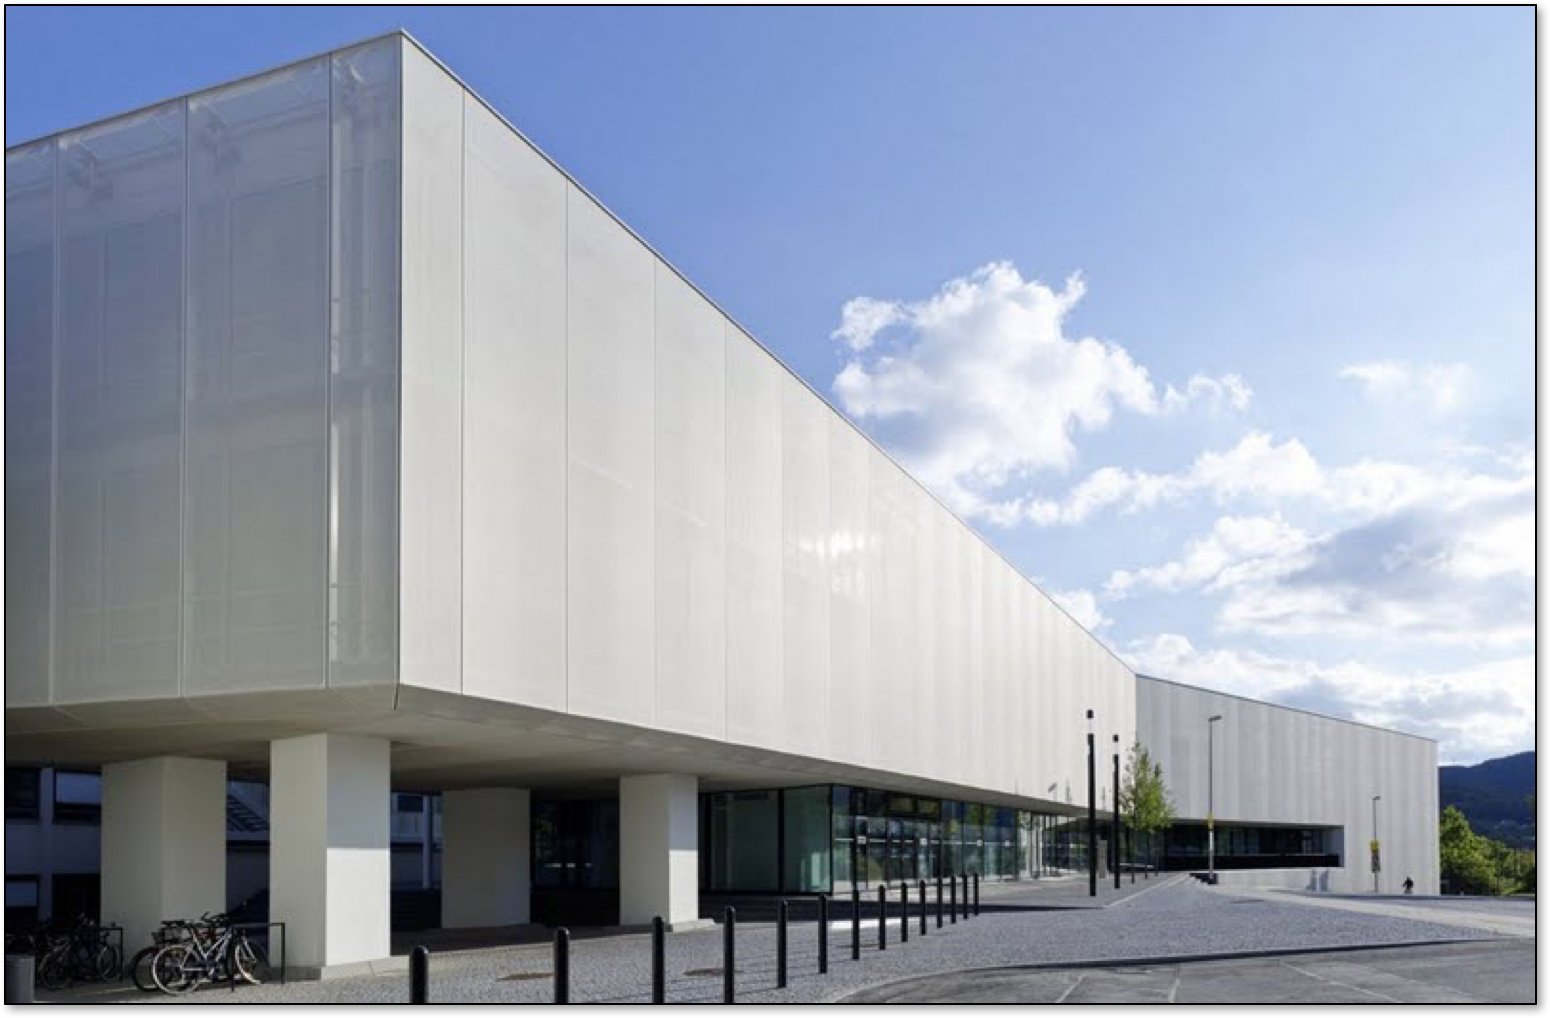 What Are the Key Benefits of a Ventilated & Shaded Fabric Mesh Facade?